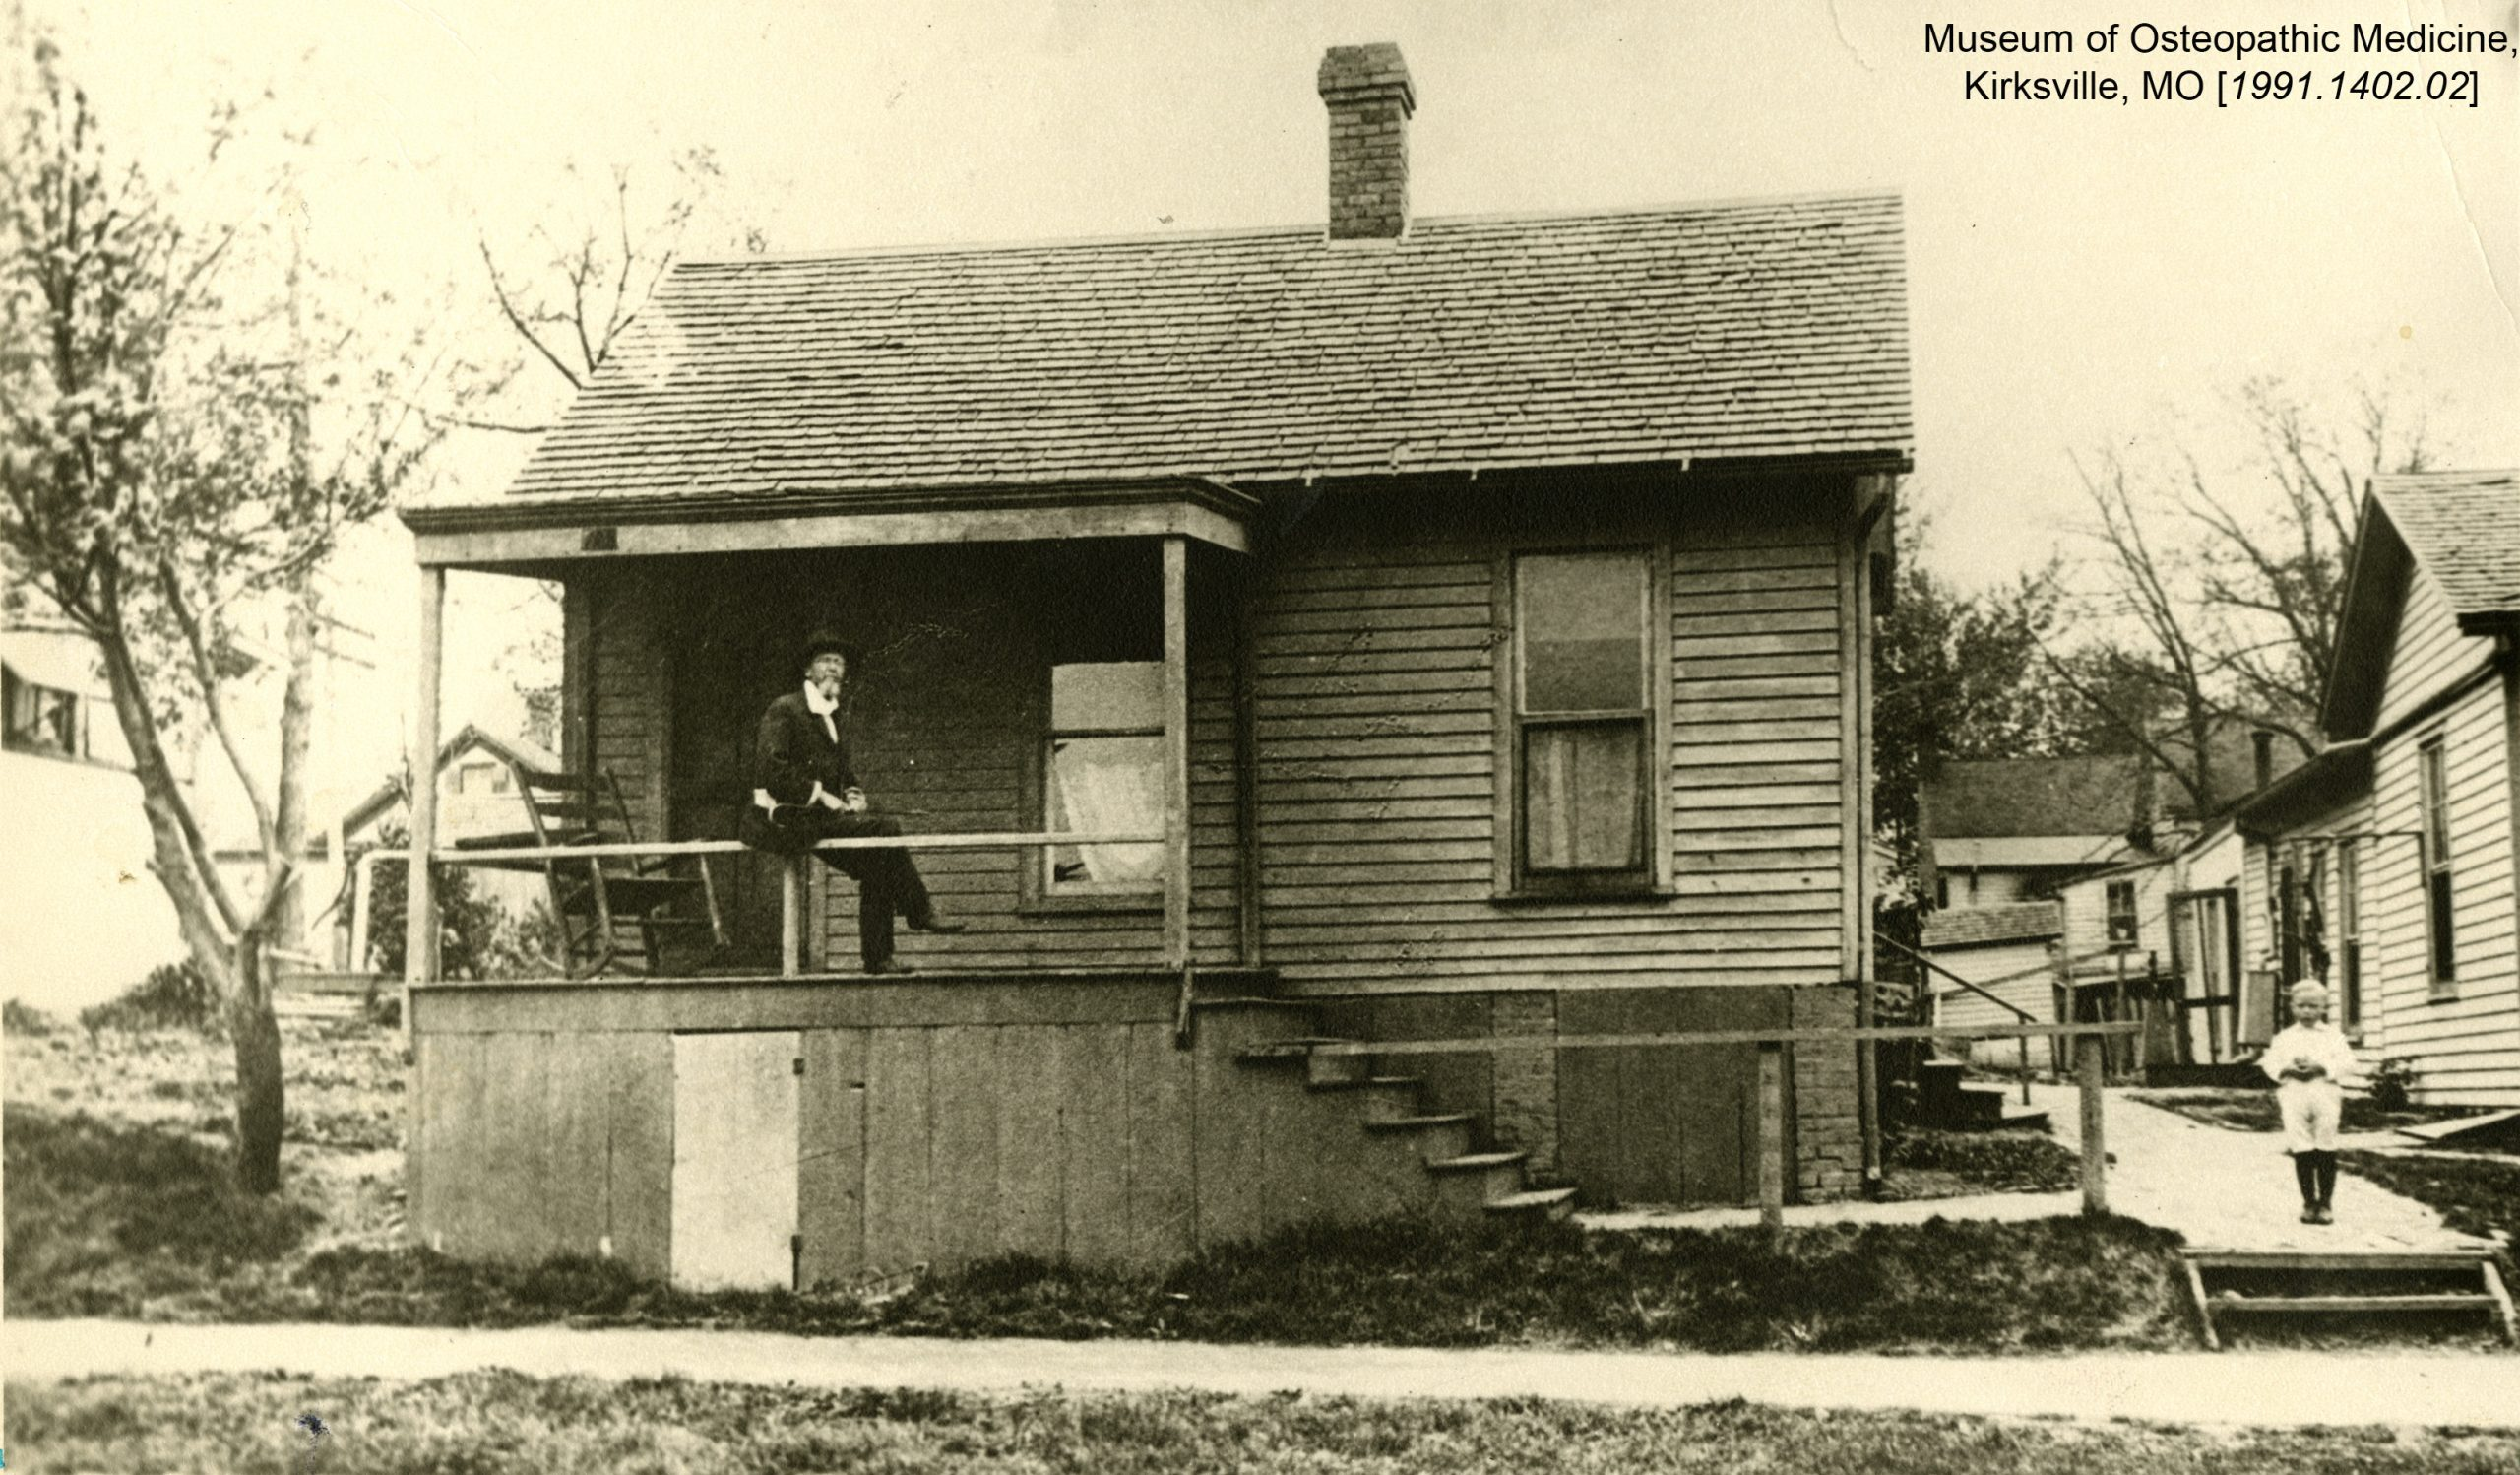 Dr. Still sits on the porch of the first school of osteopathic medicine. Museum of Osteopathic Medicine, Kirksville, Missouri [1991.1402.02]